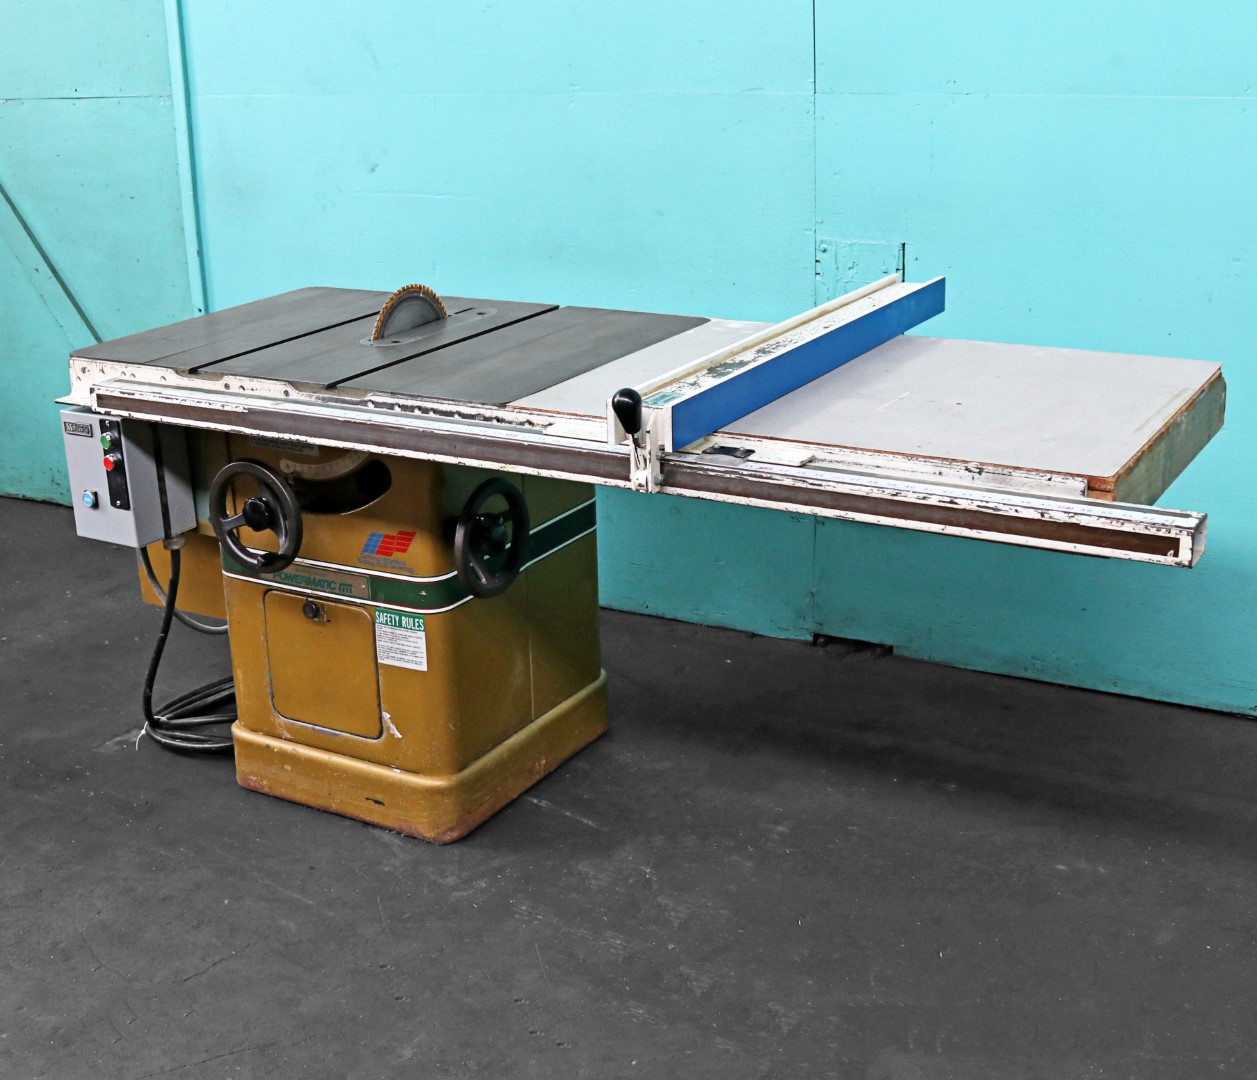 Table saw safety rules best table 2018 powermatic 10 tilting arbor table saw model 66 norman machine tool keyboard keysfo Choice Image